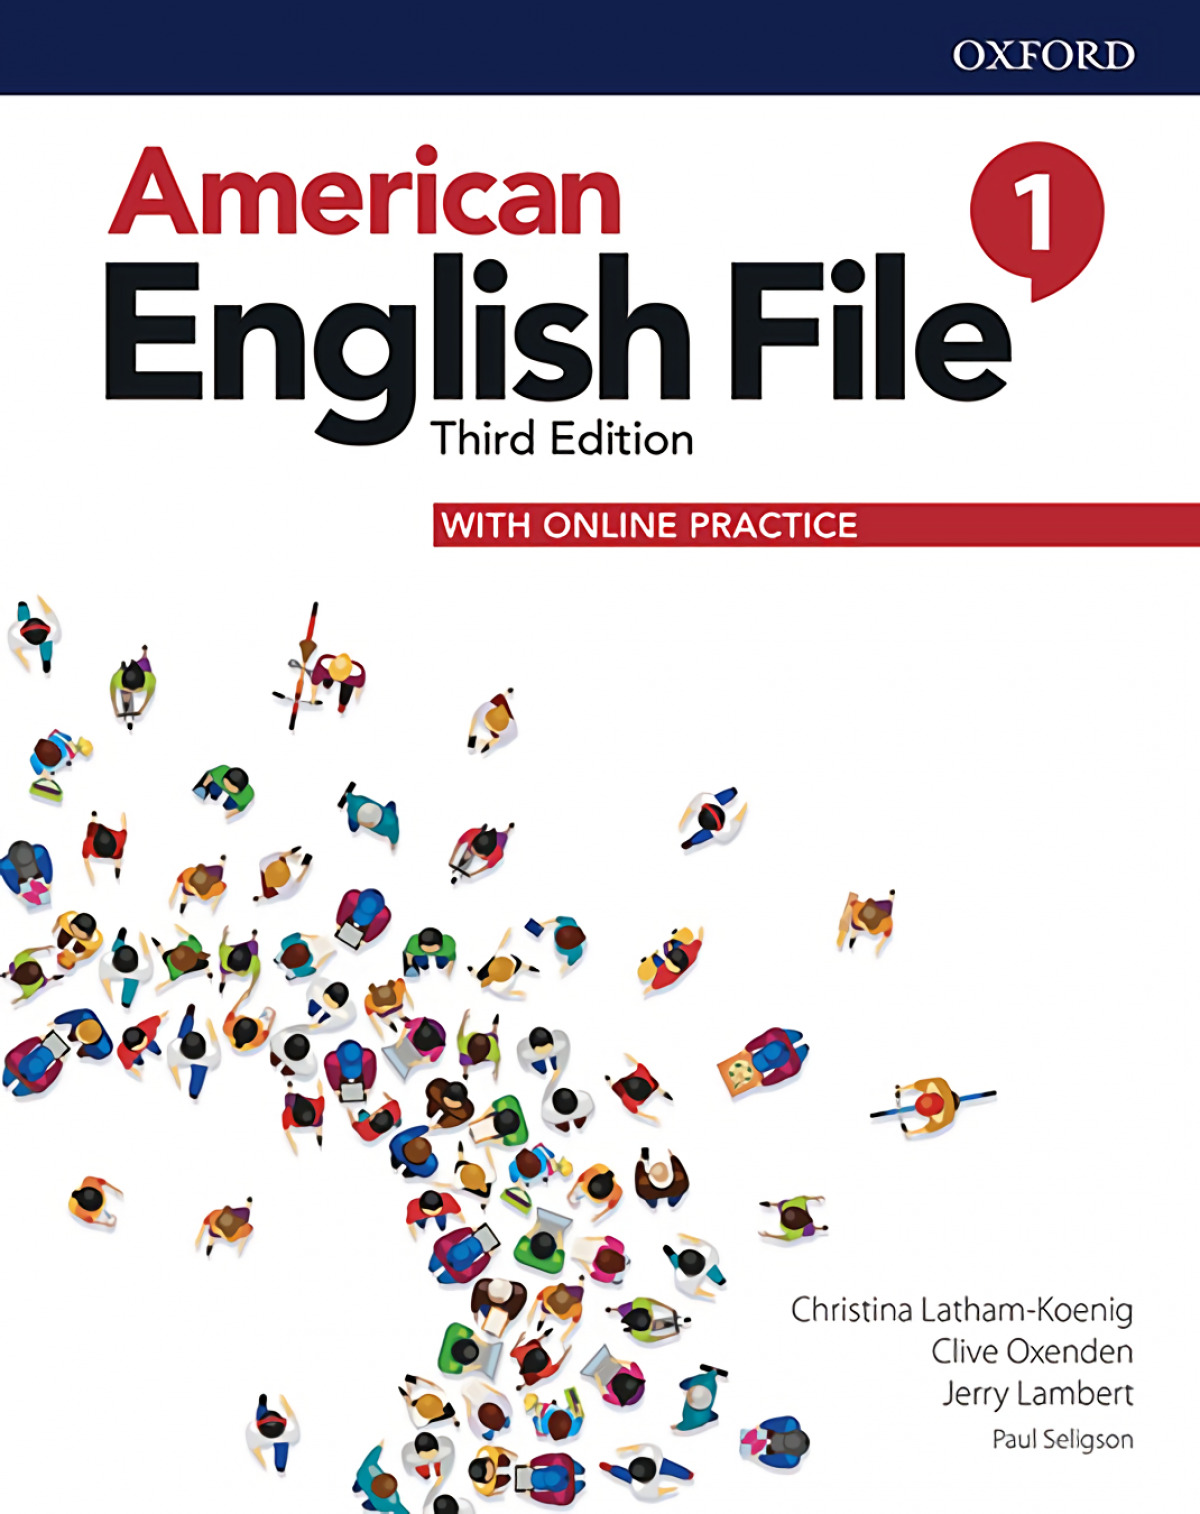 American English File 3th Edition 1. Student's Book Pack